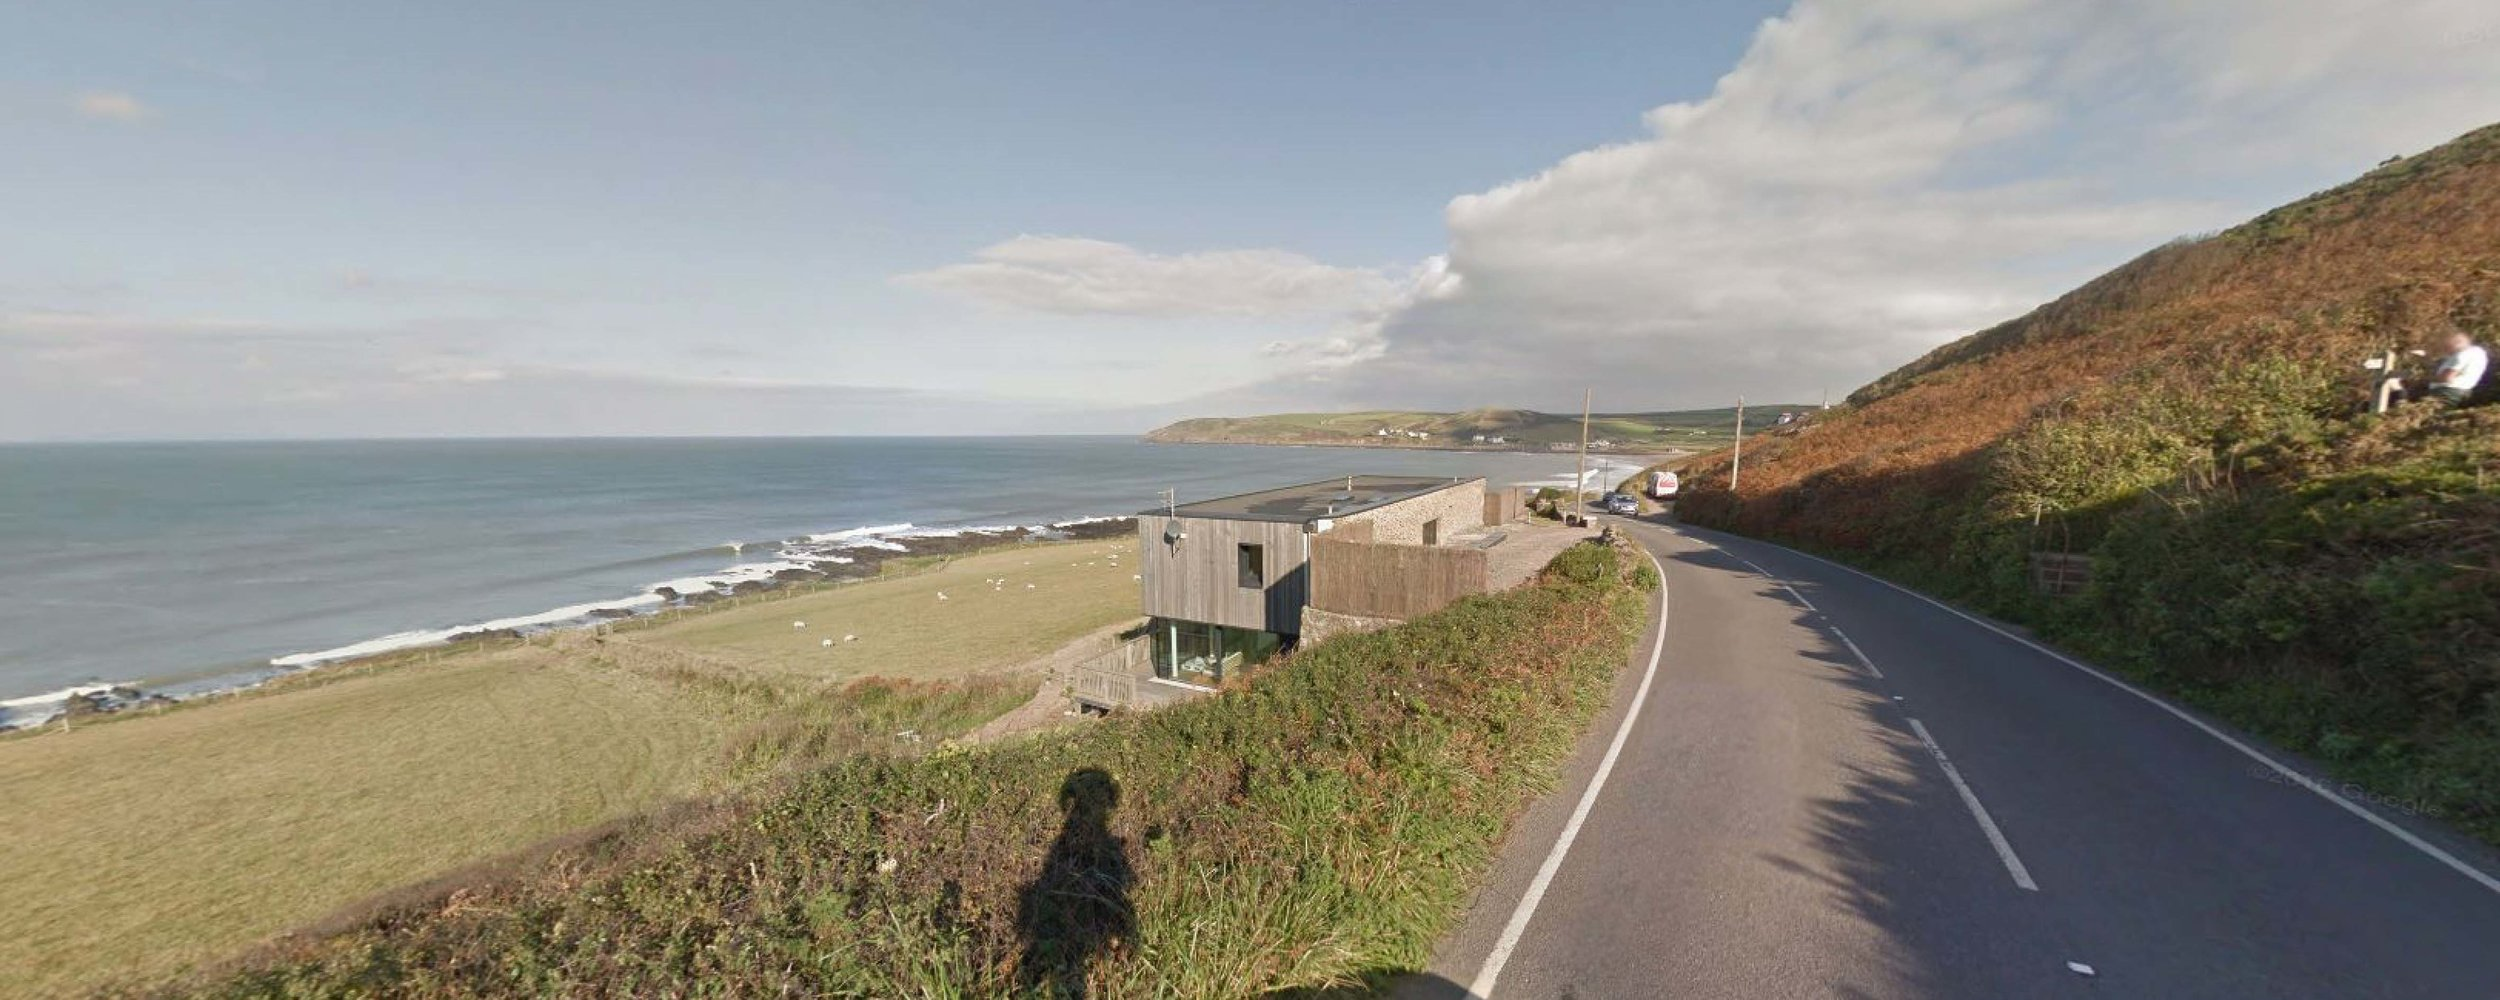 Looking north, the property viewed from the Croyde Road